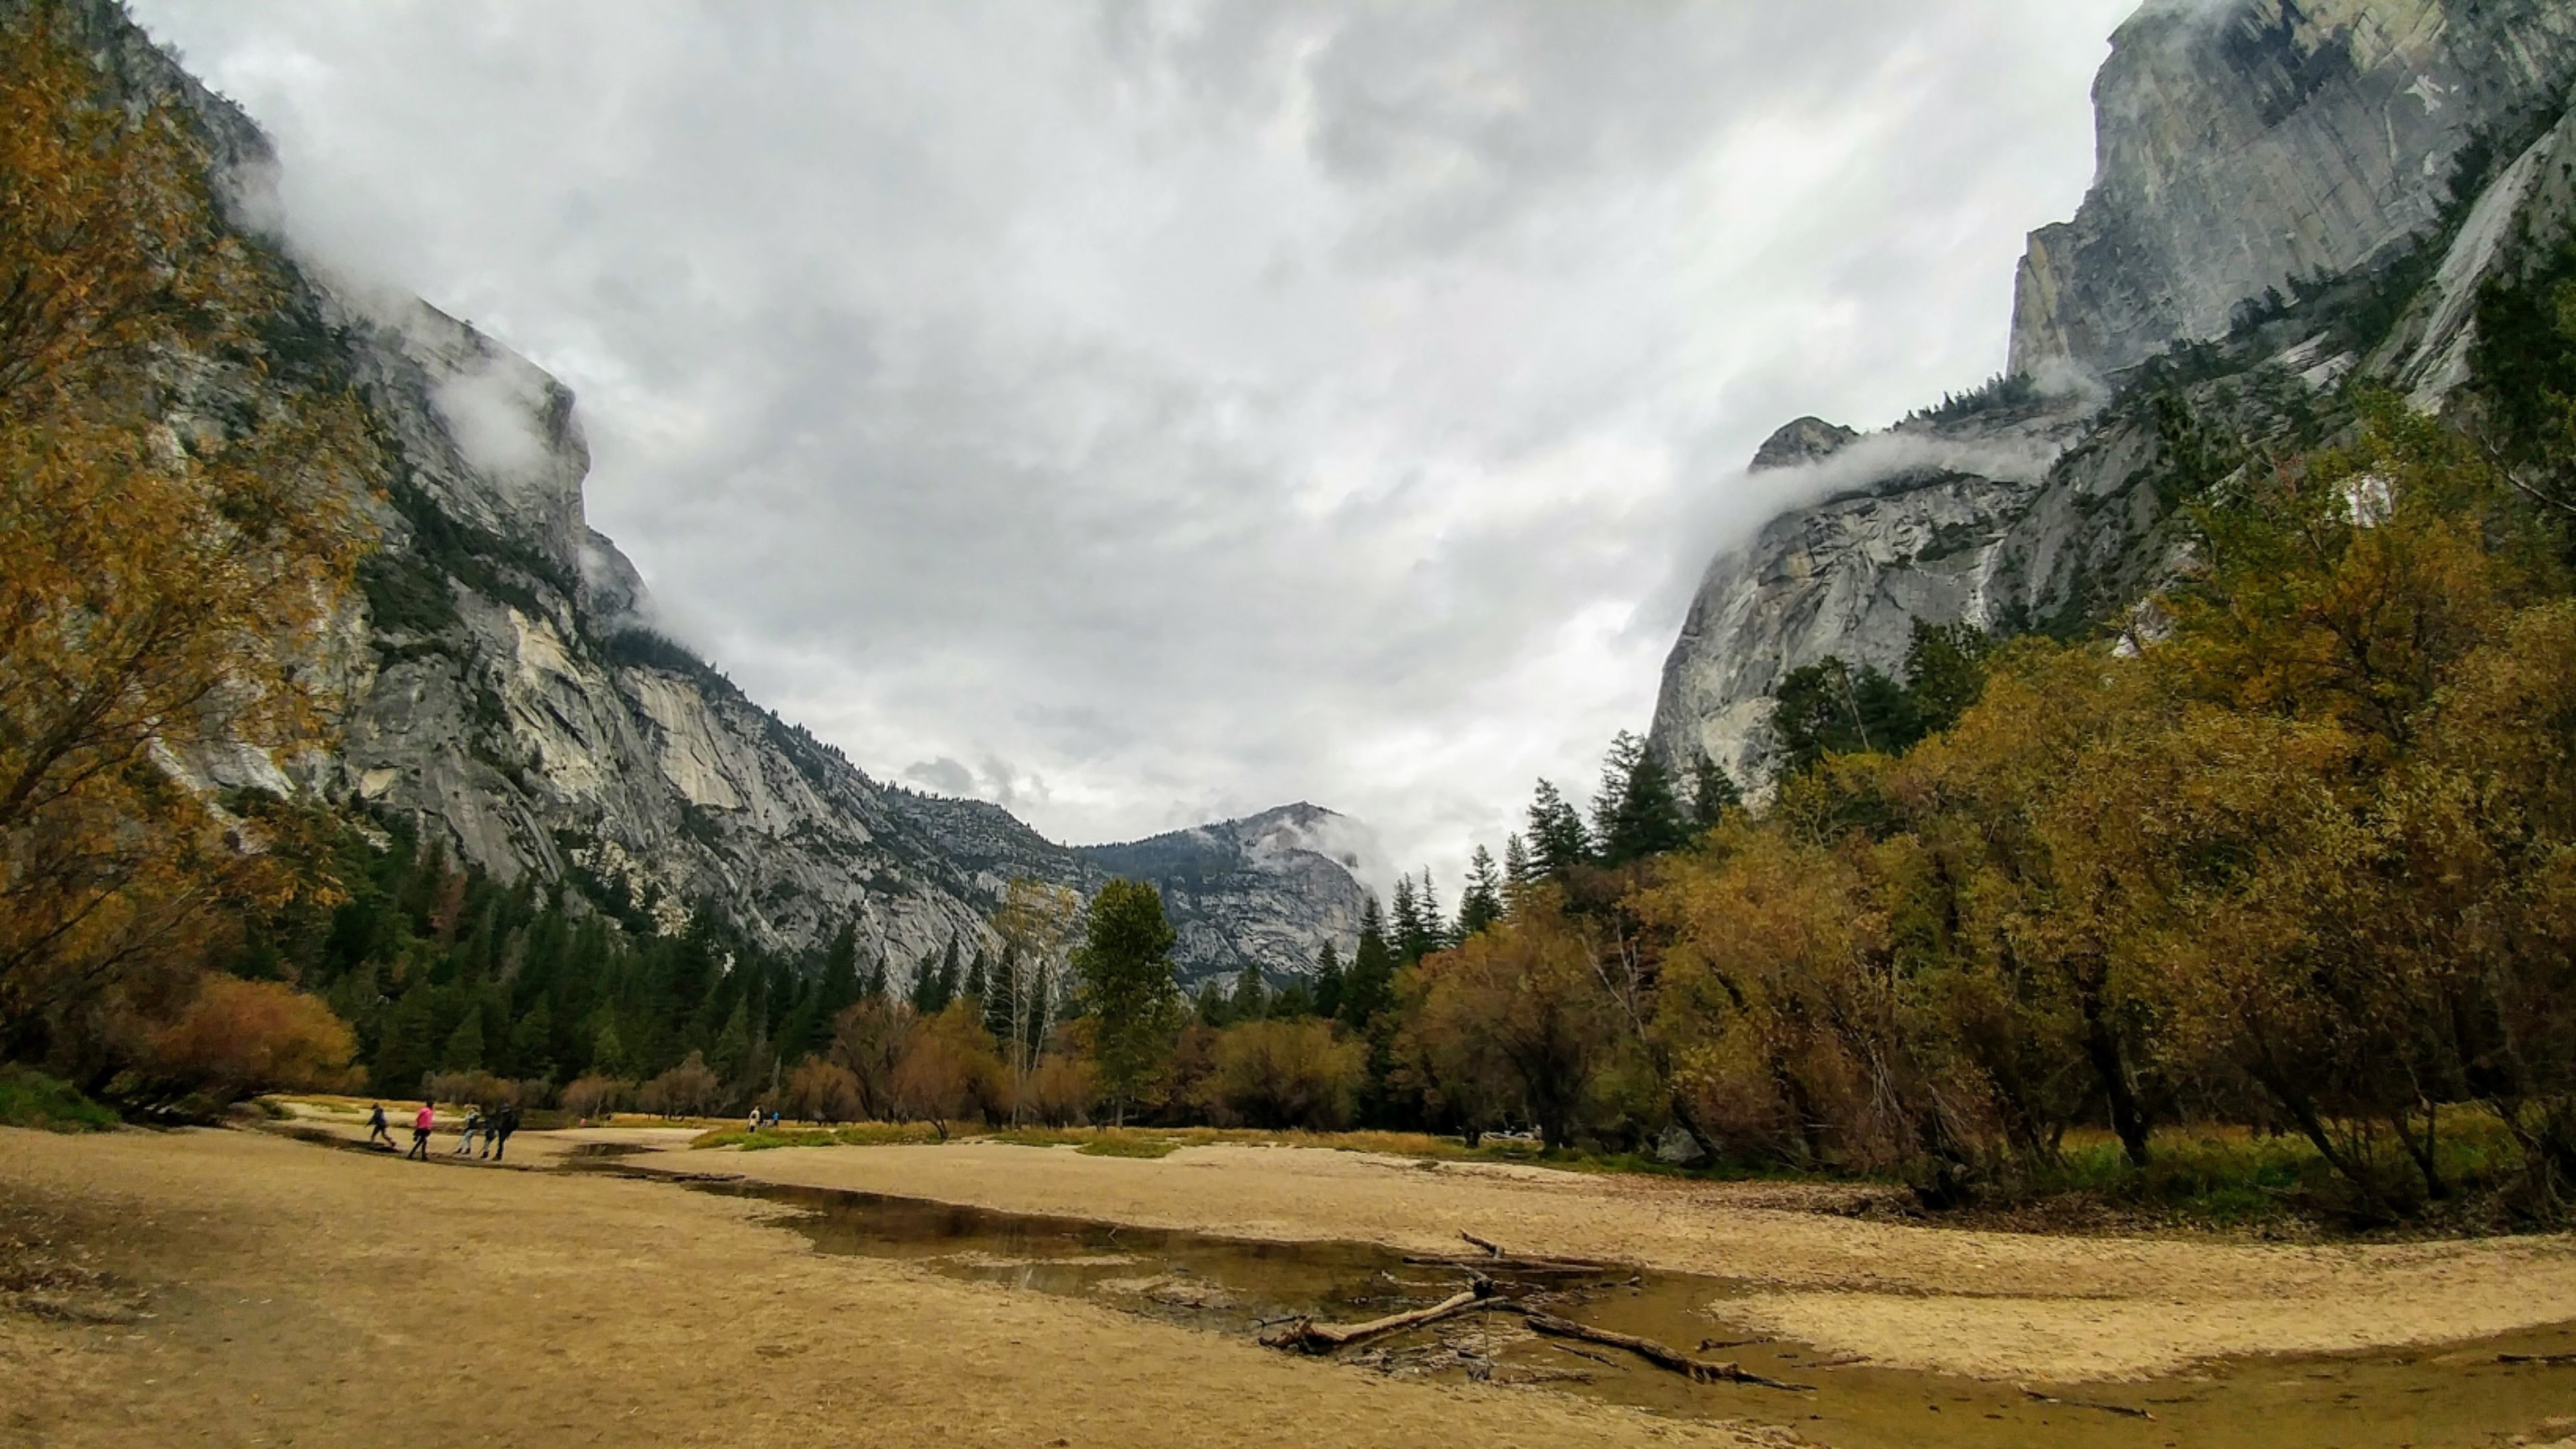 One Day in Yosemite National Park [Itinerary with Photos]